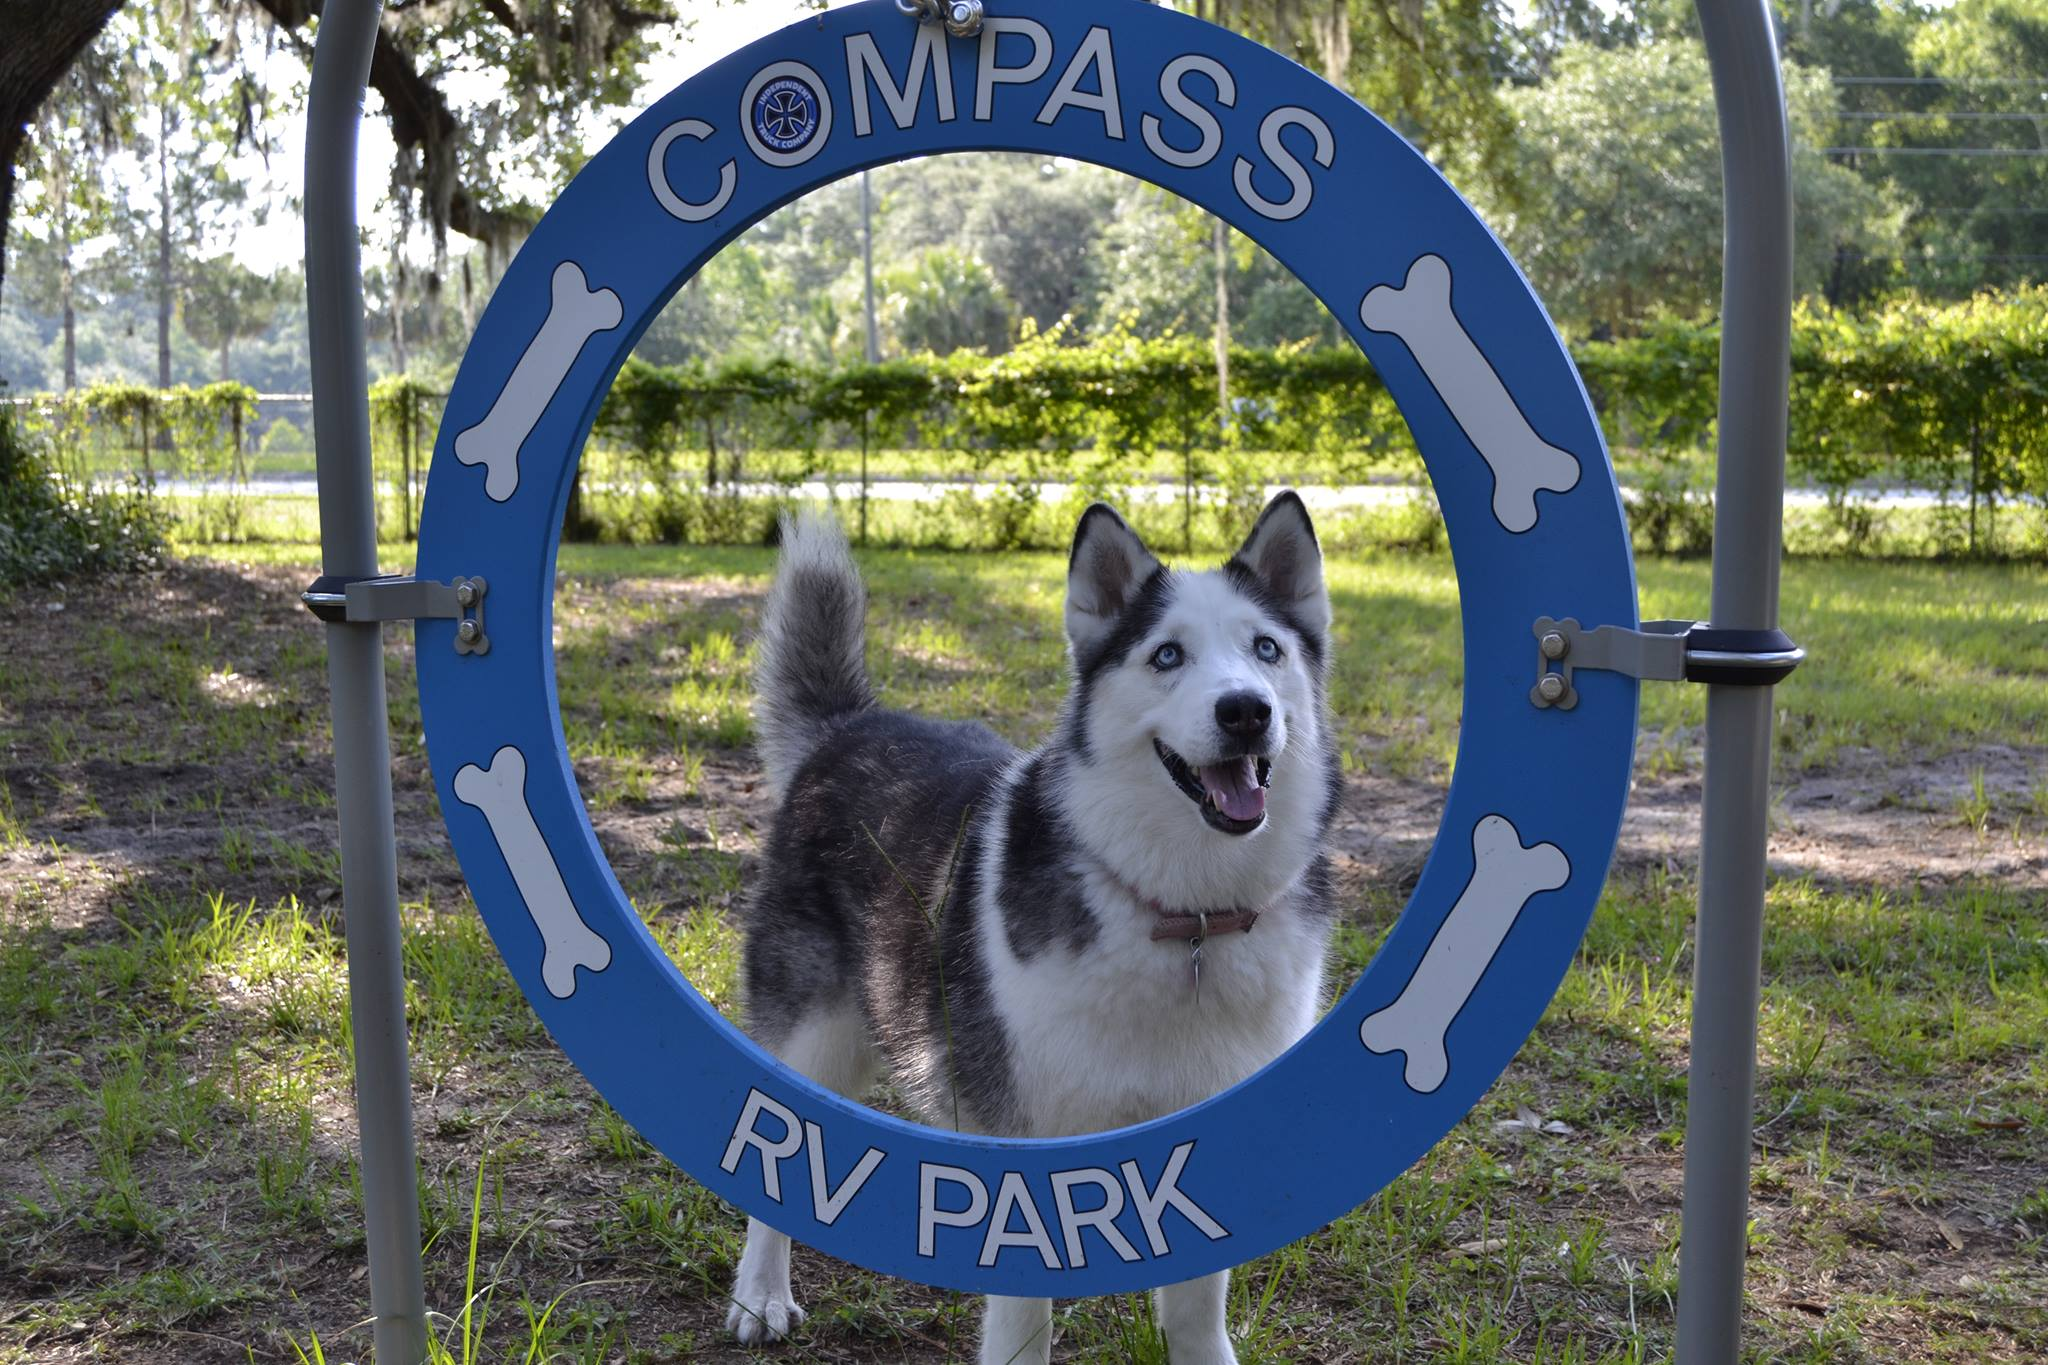 Credit: Compass RV Park Facebook Page